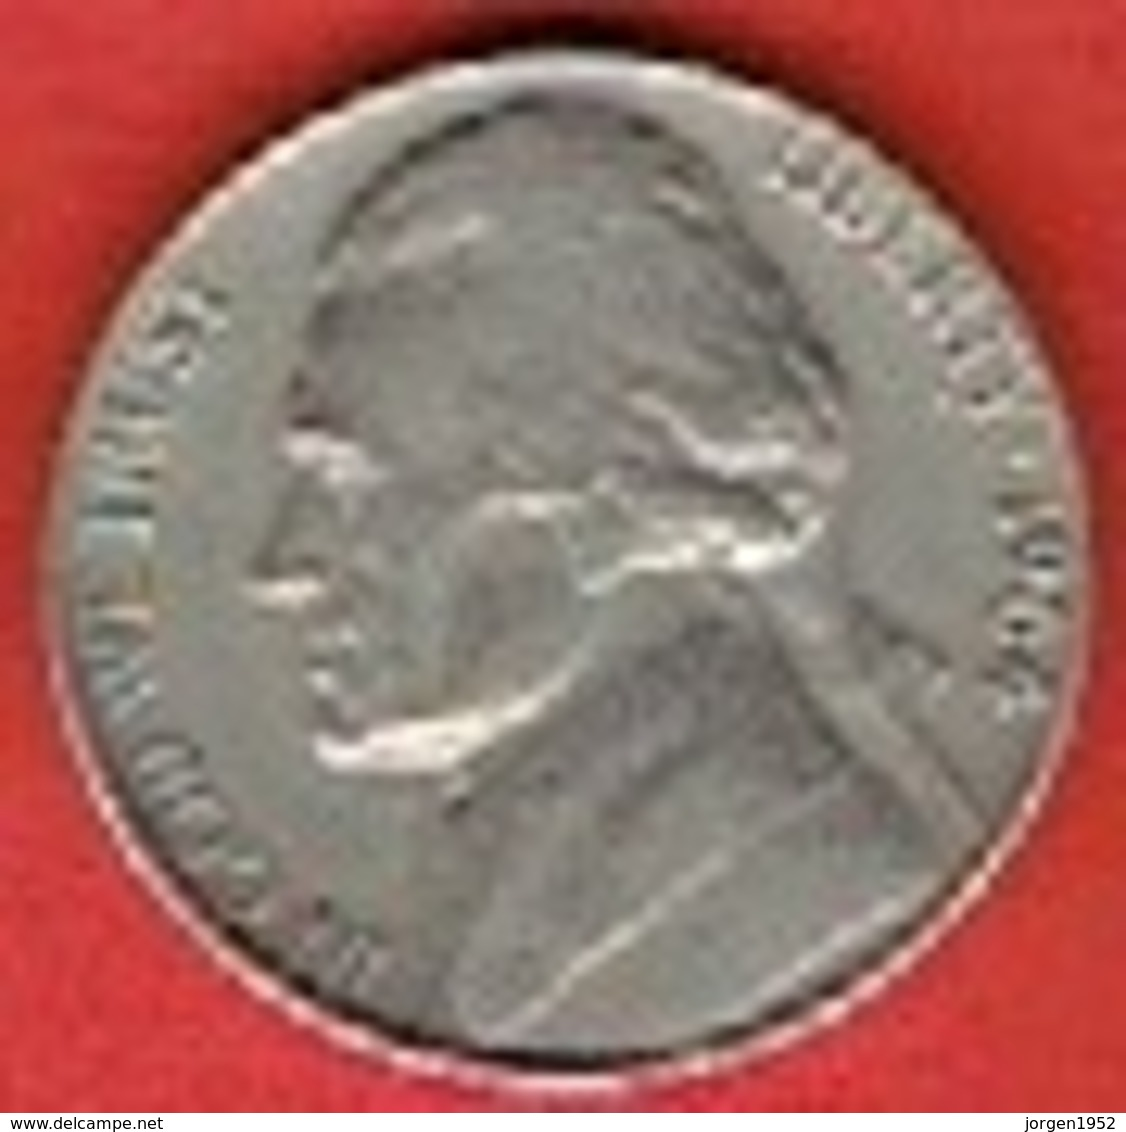 """UNITED STATES  # 5 Cents """"Jefferson Nickel"""" 1st Portrait FROM 1964 - Federal Issues"""